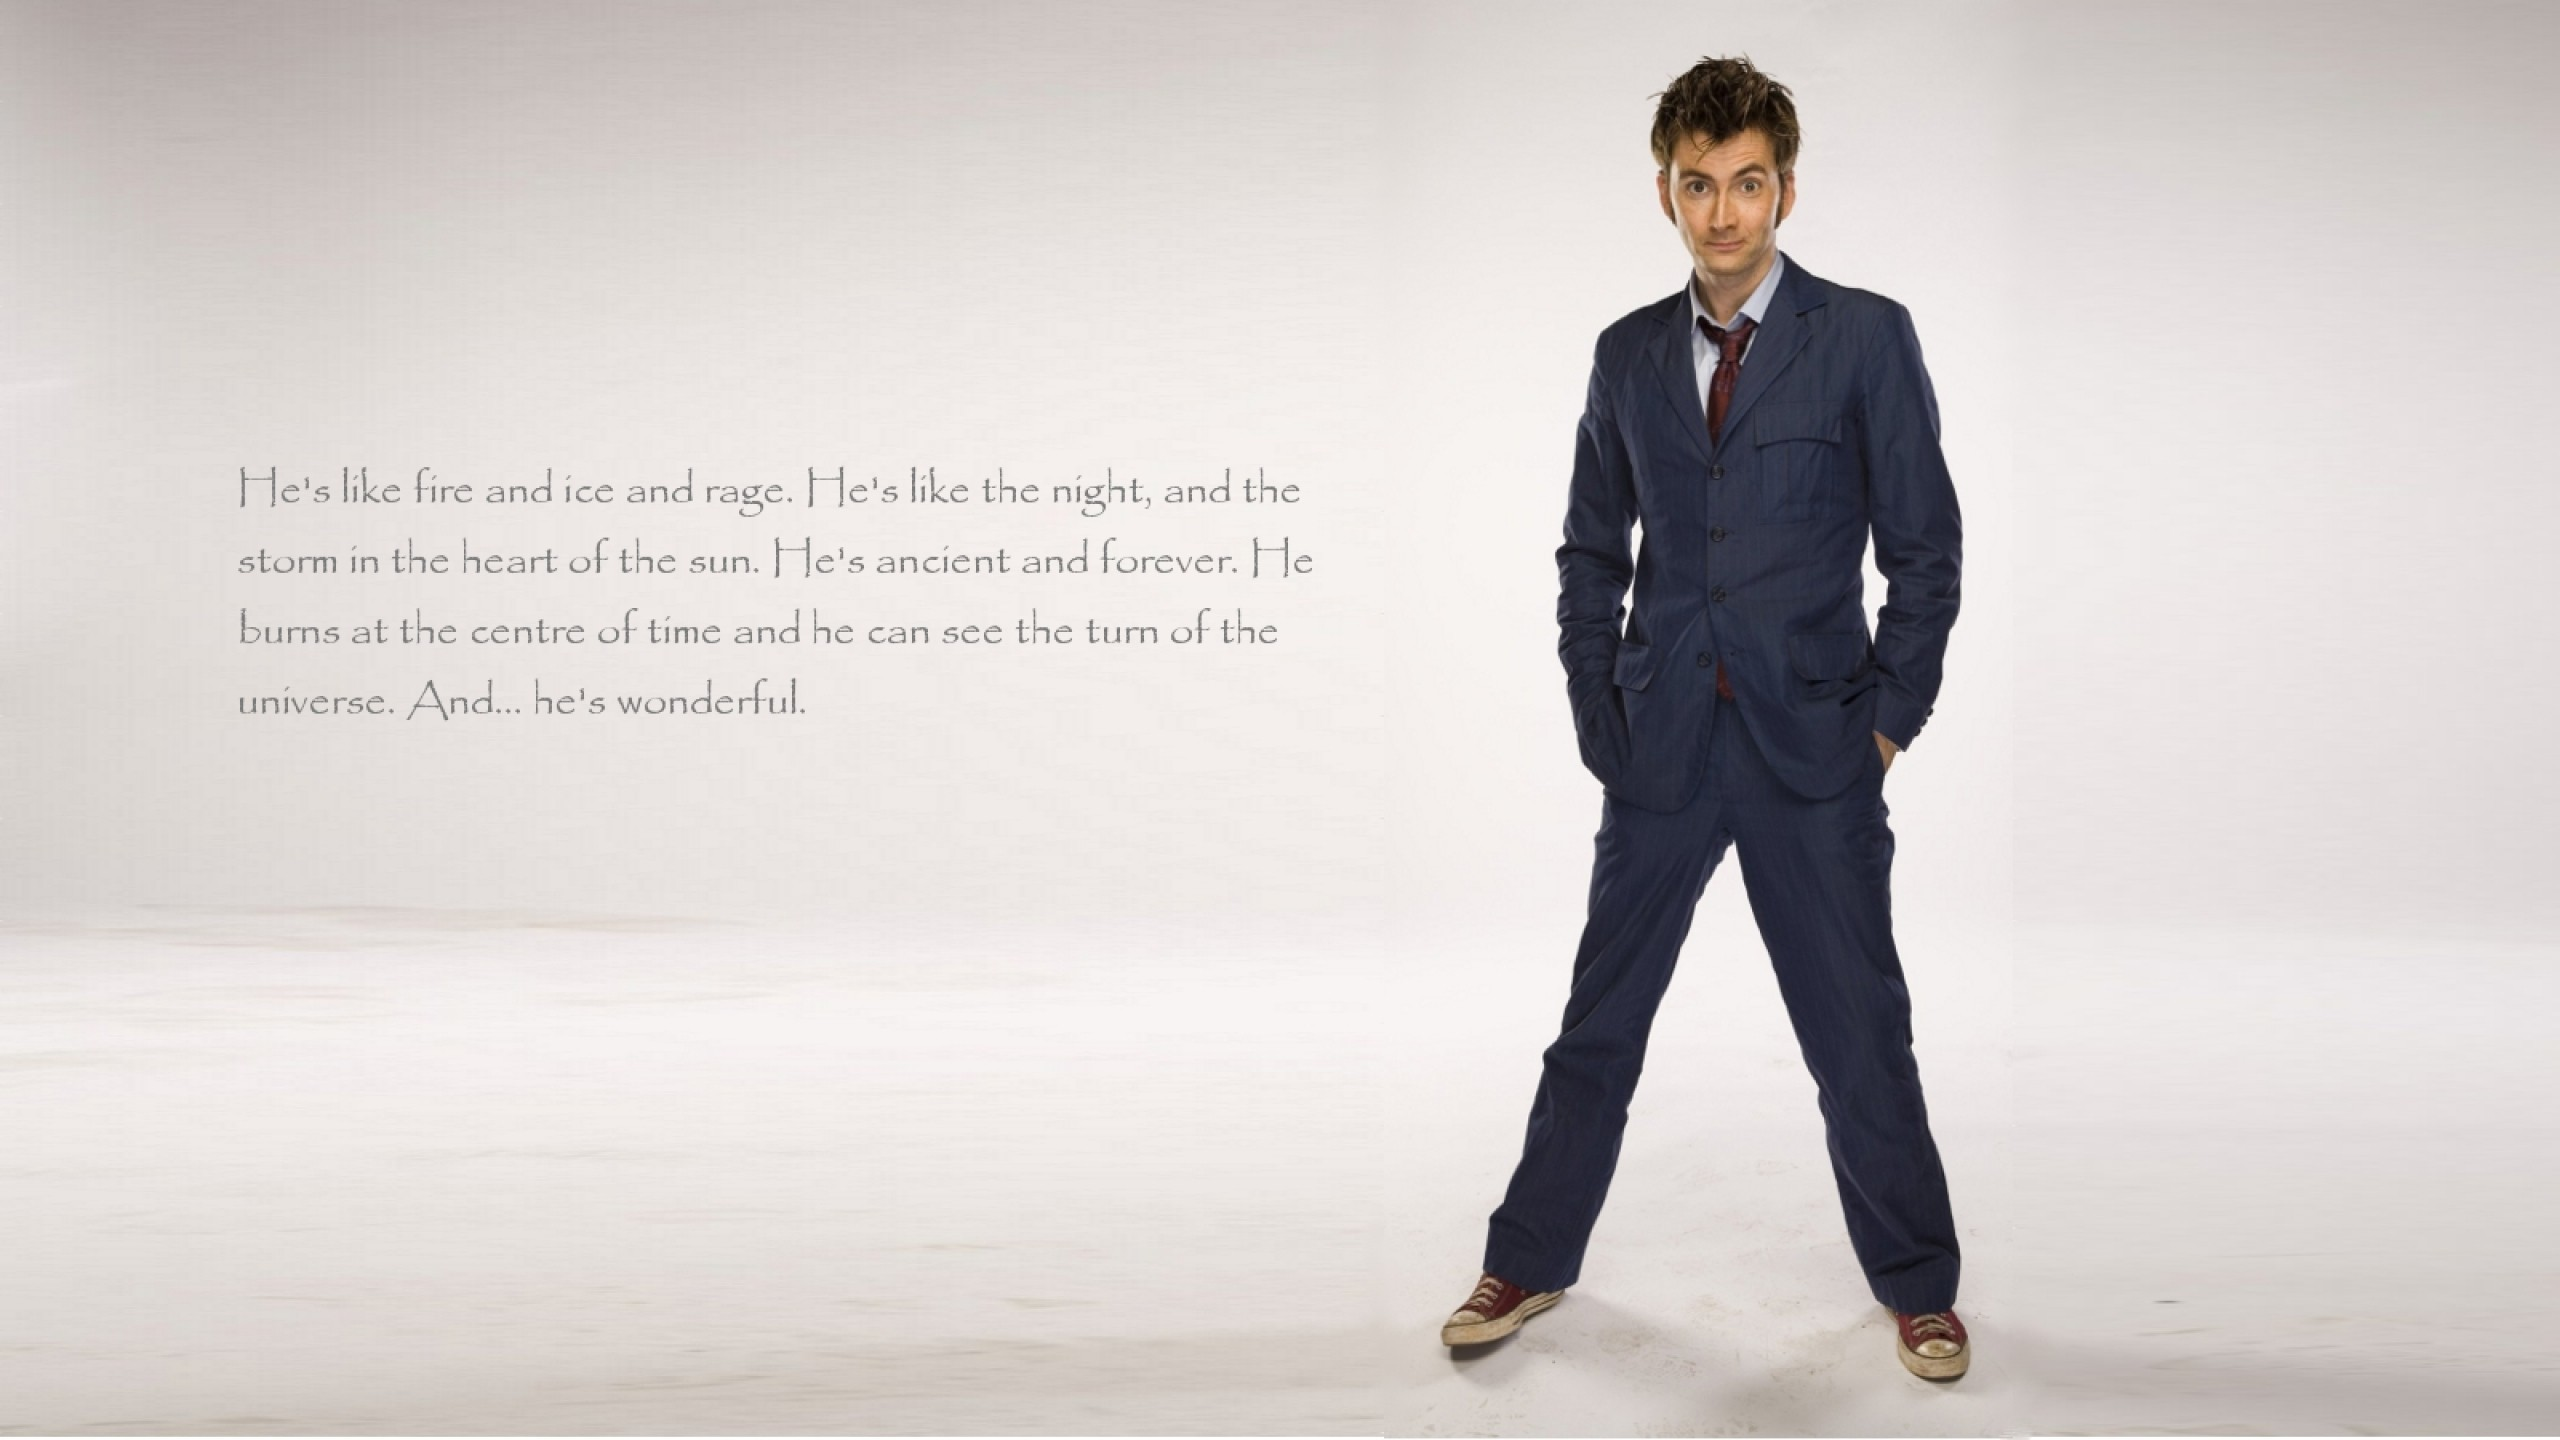 Doctor Who, The Doctor, TARDIS, David Tennant, Tenth Doctor, Quote  Wallpapers HD / Desktop and Mobile Backgrounds